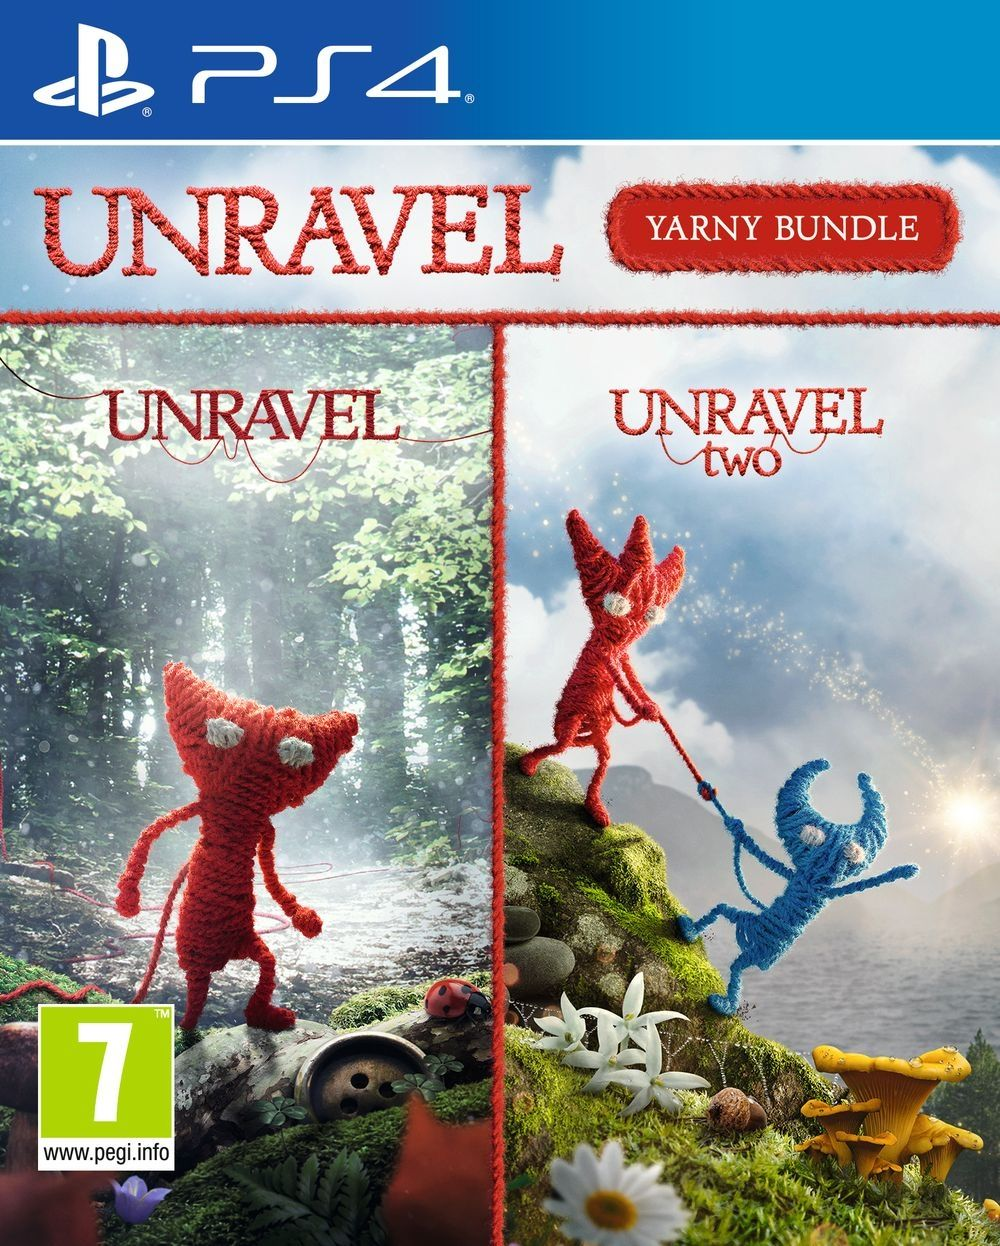 Unravel Yarny Bundle (PS4) - 1